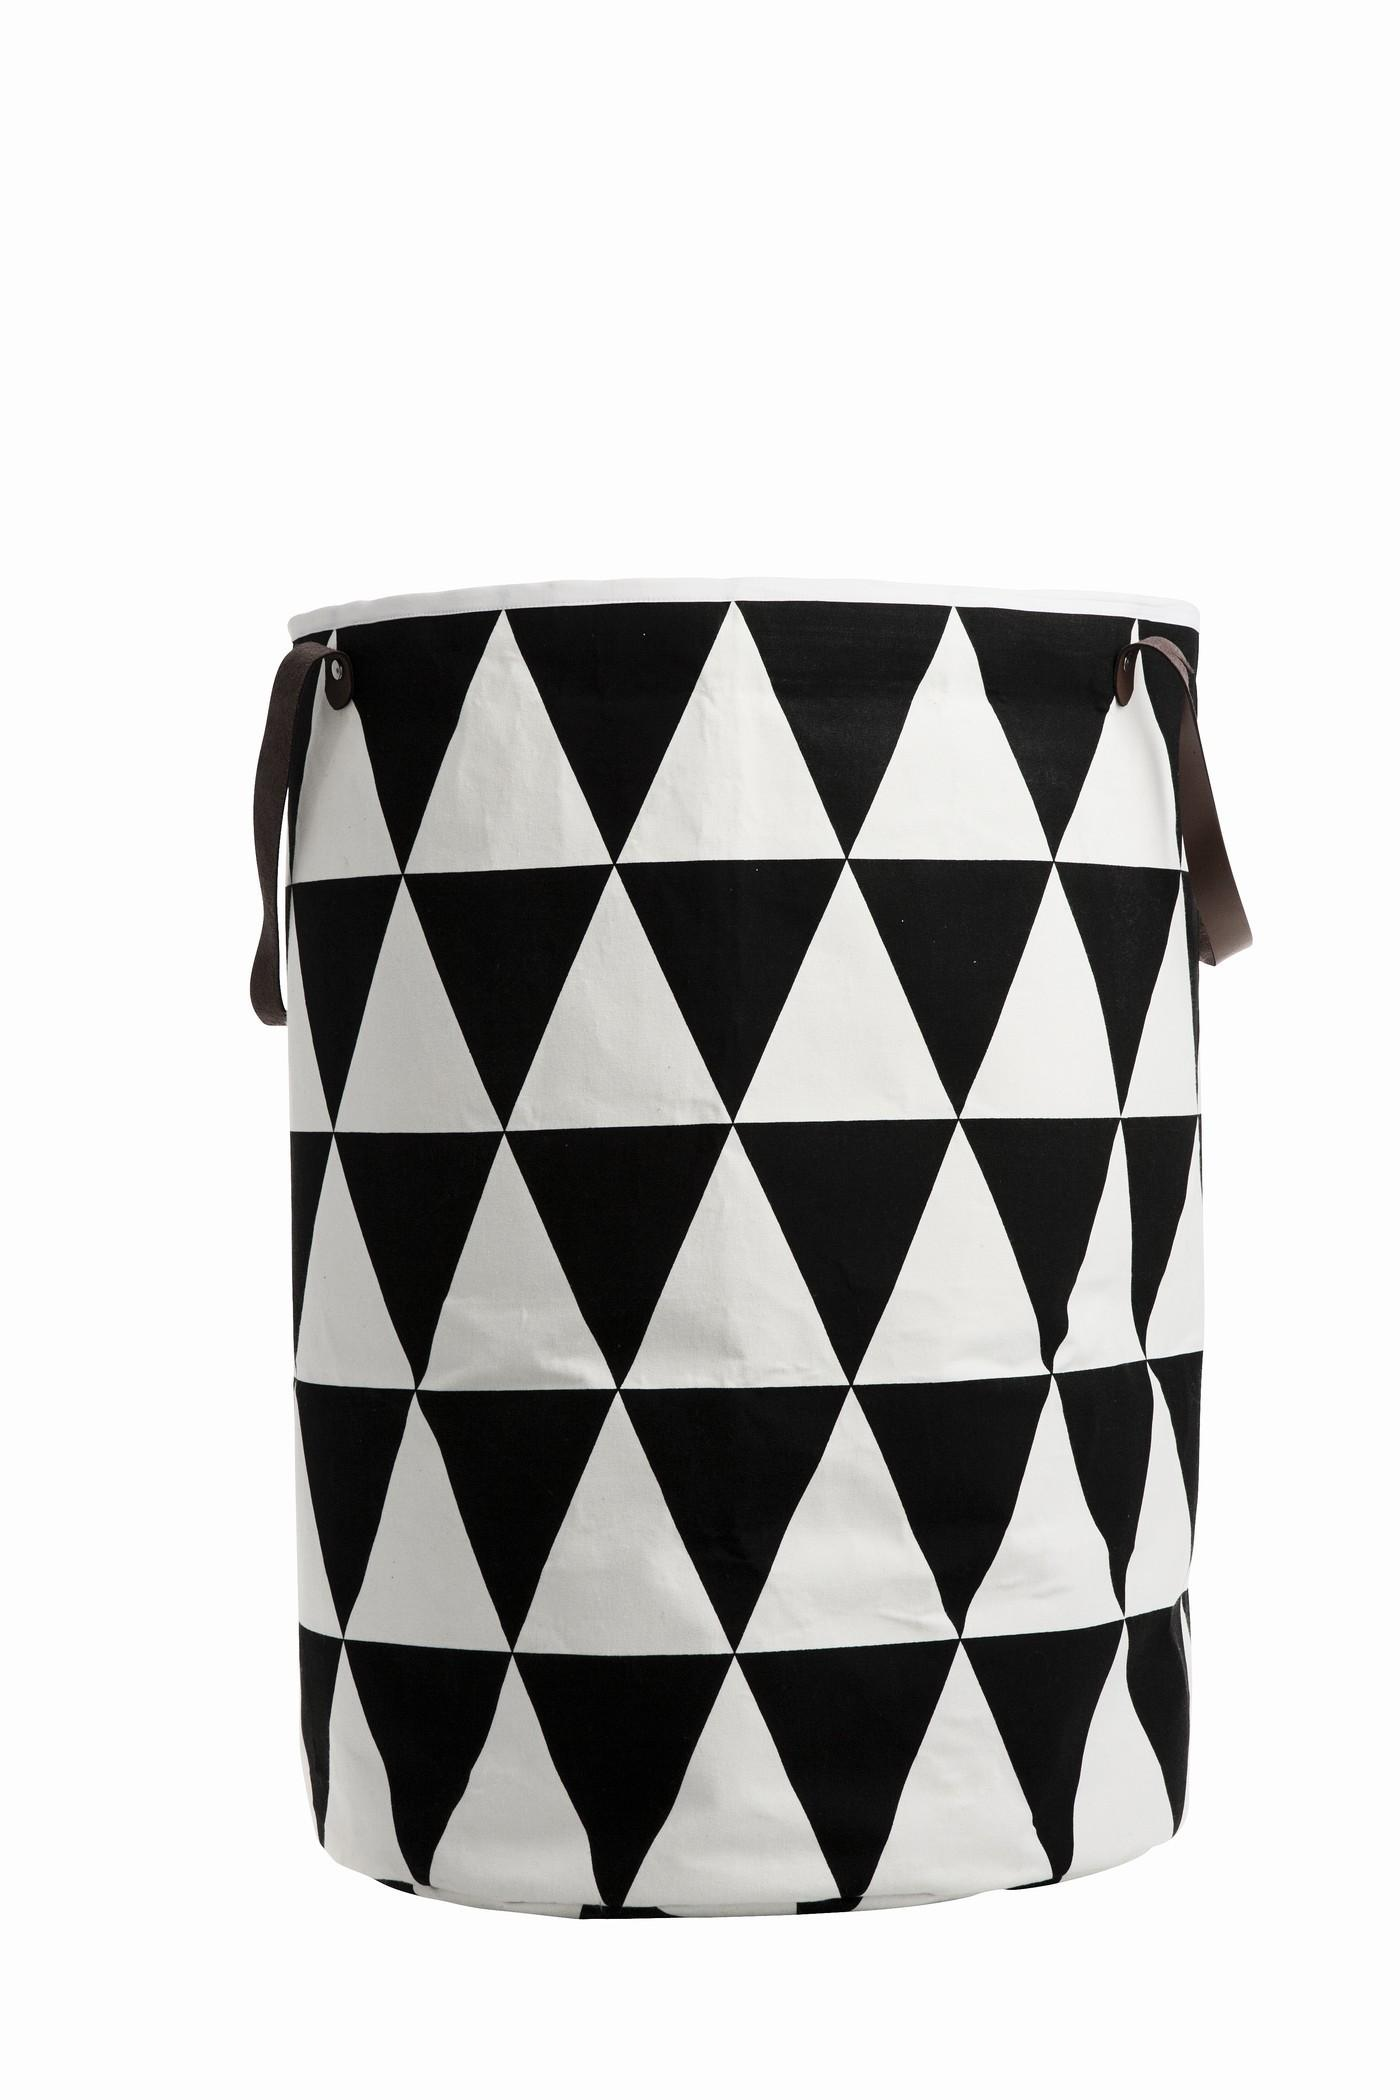 Modern Laundry Basket Hamper Contemporary Designs